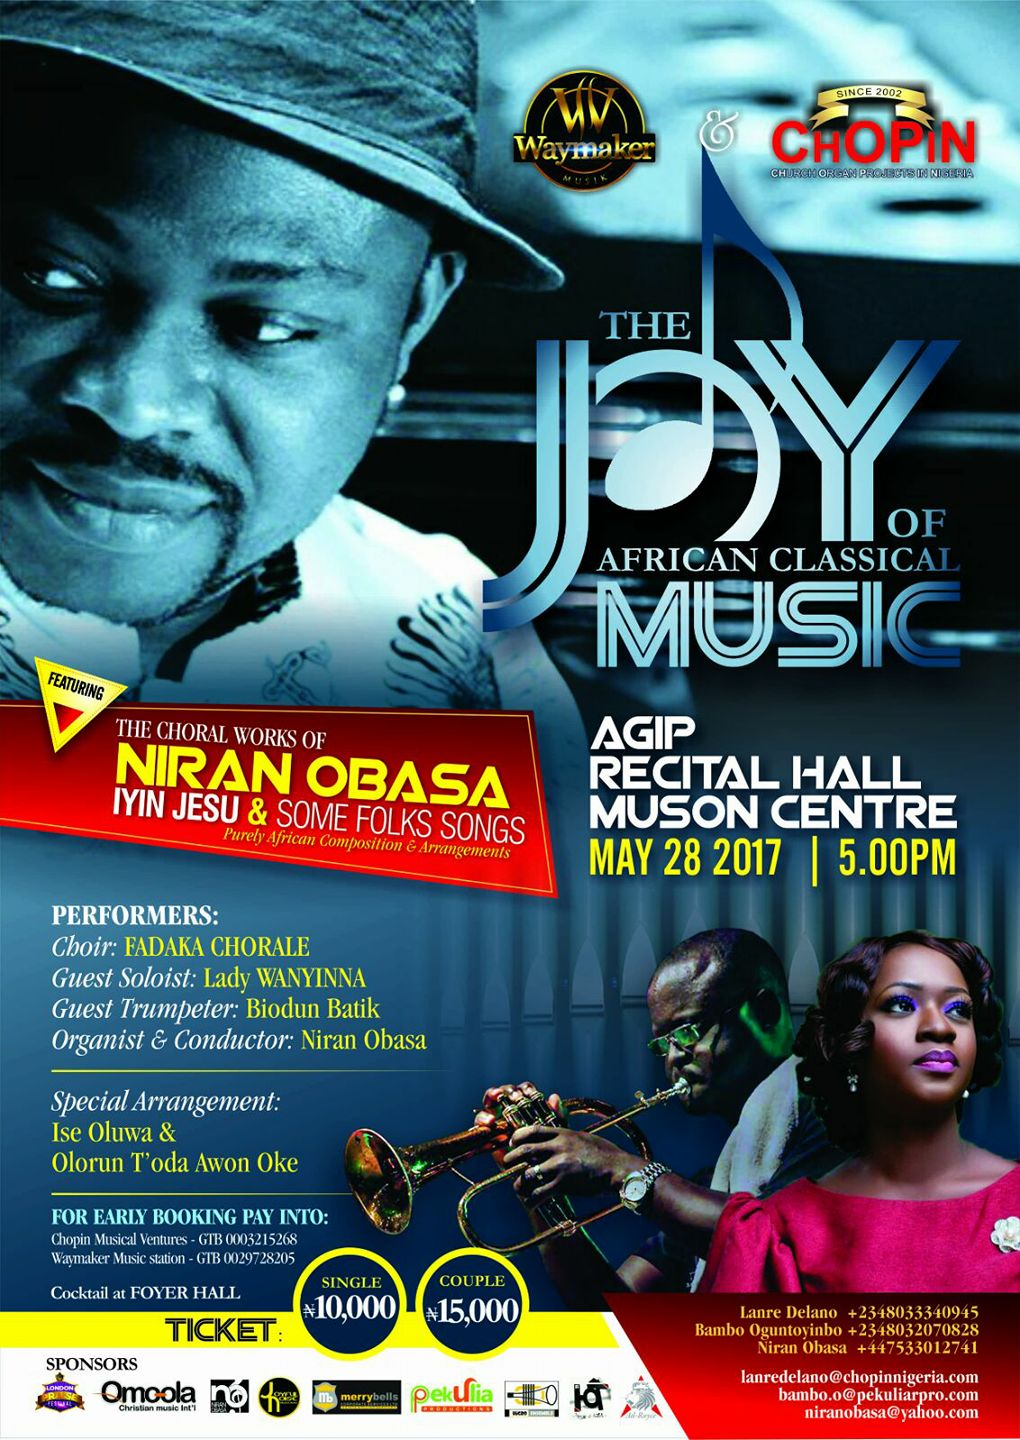 The Joy of African Classical Music - Joy of African Classical Music